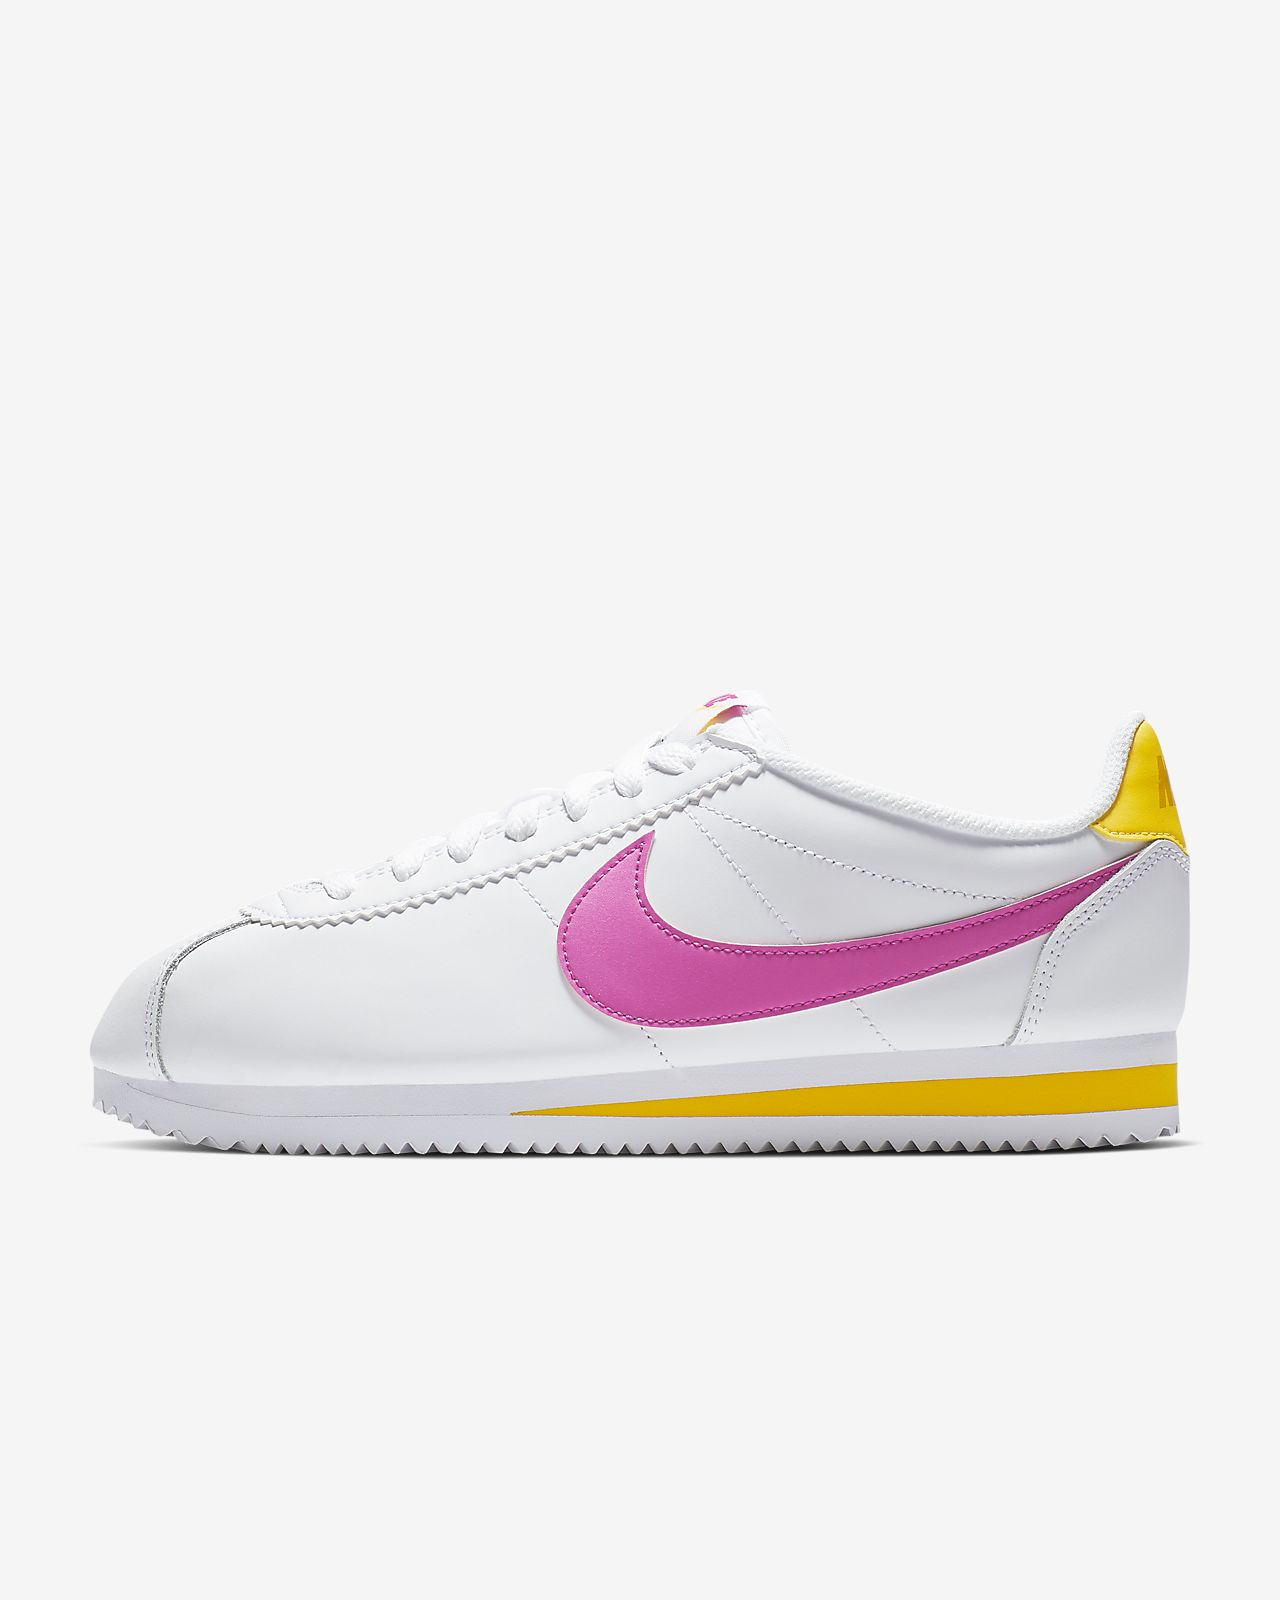 the latest 57c9b 7b98b ... Sko Nike Classic Cortez för kvinnor